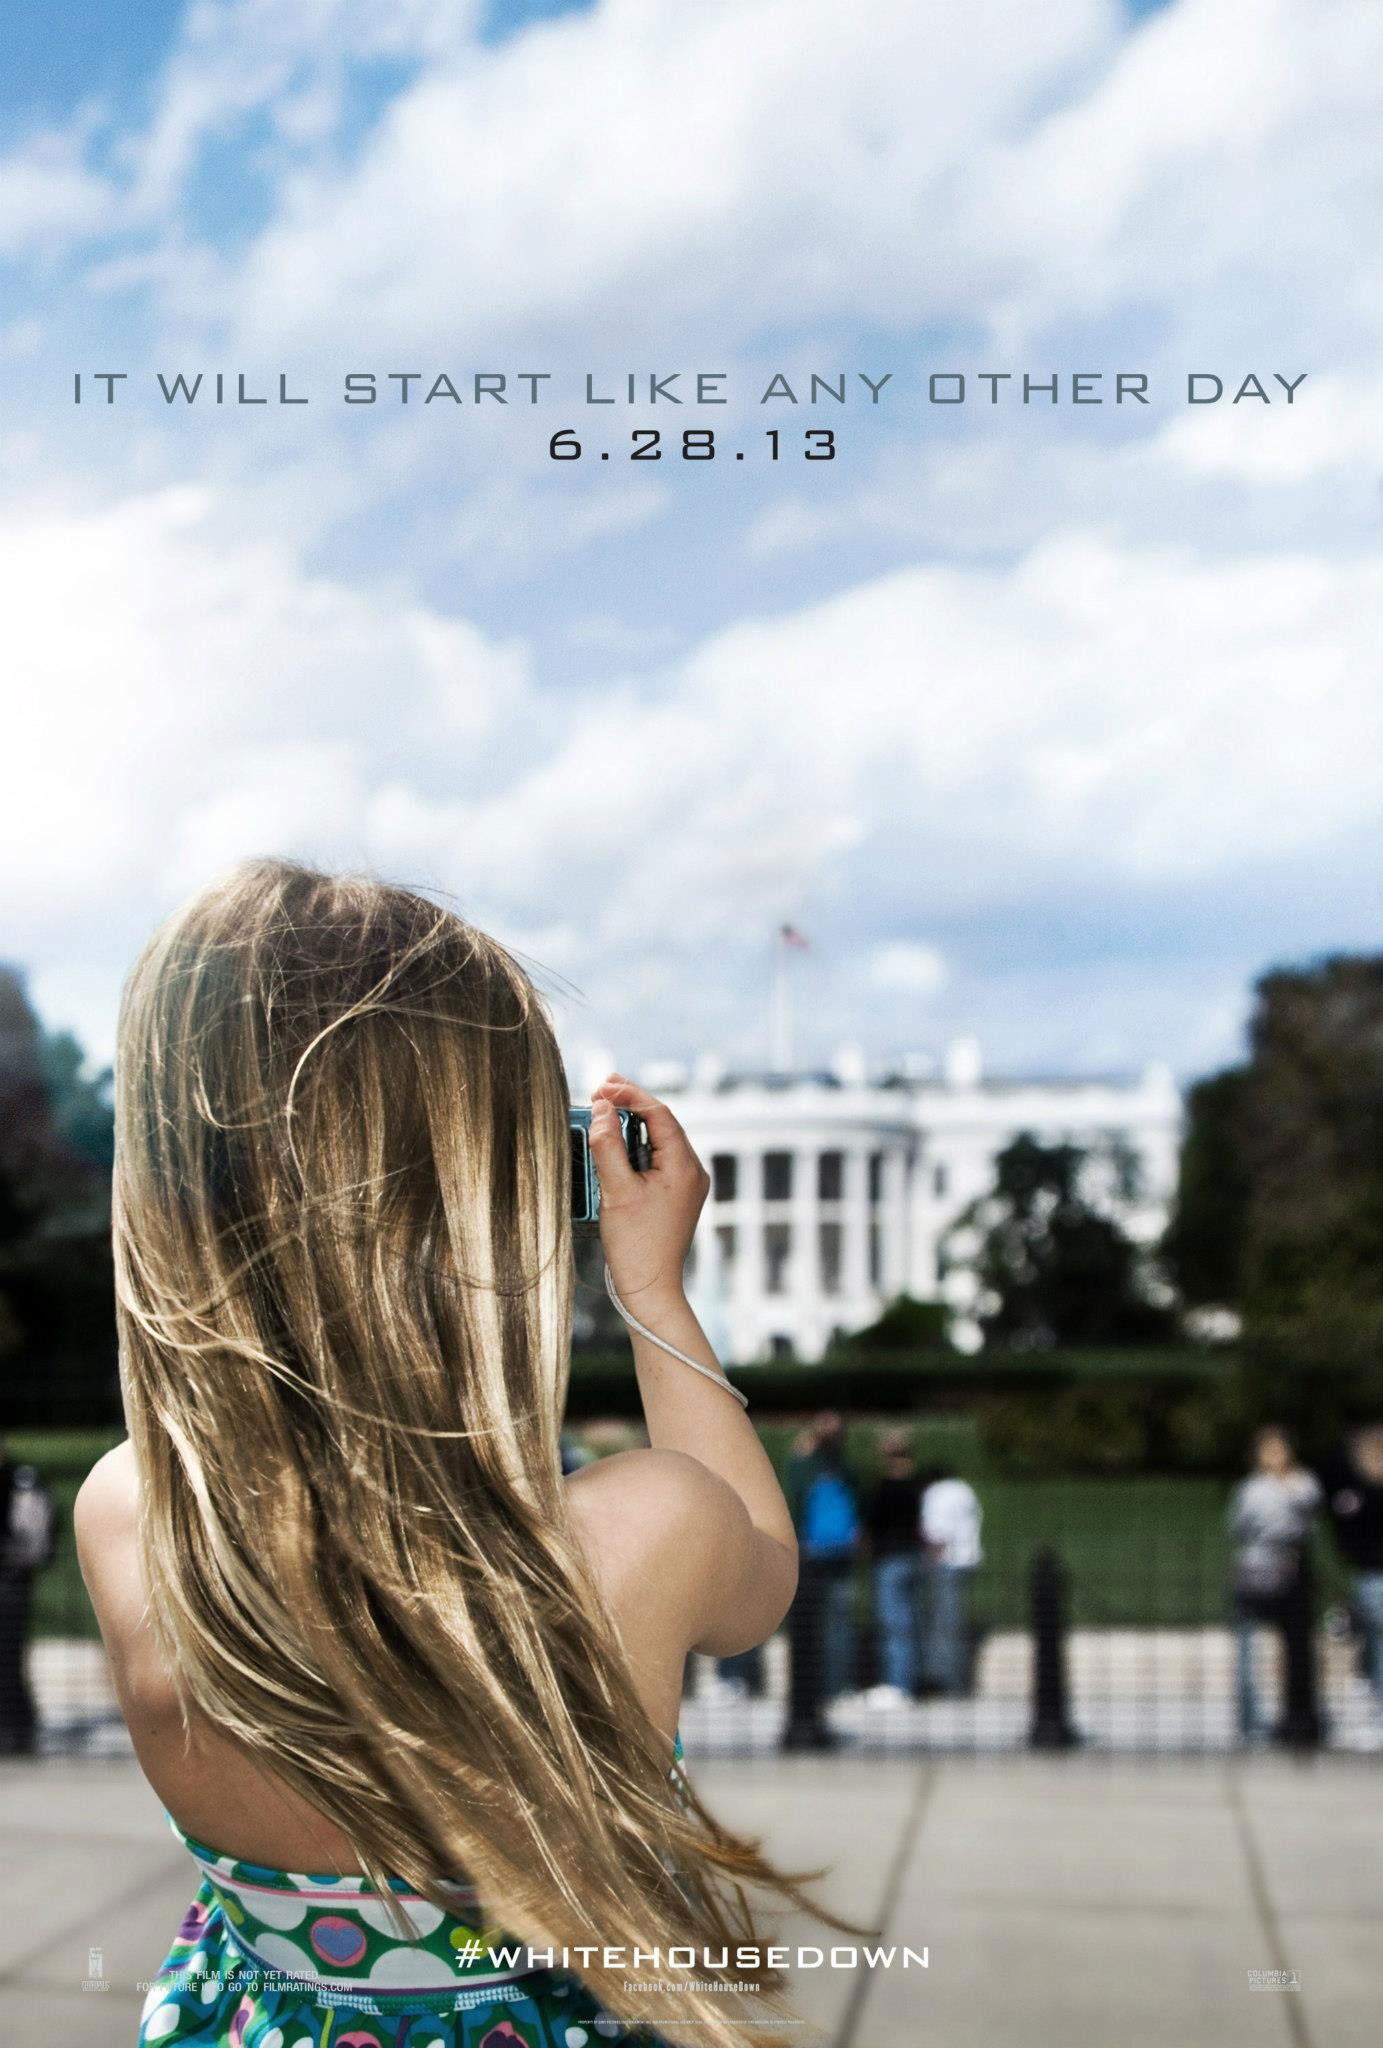 2-WHITE-HOUSE-DOWN-POSTERS